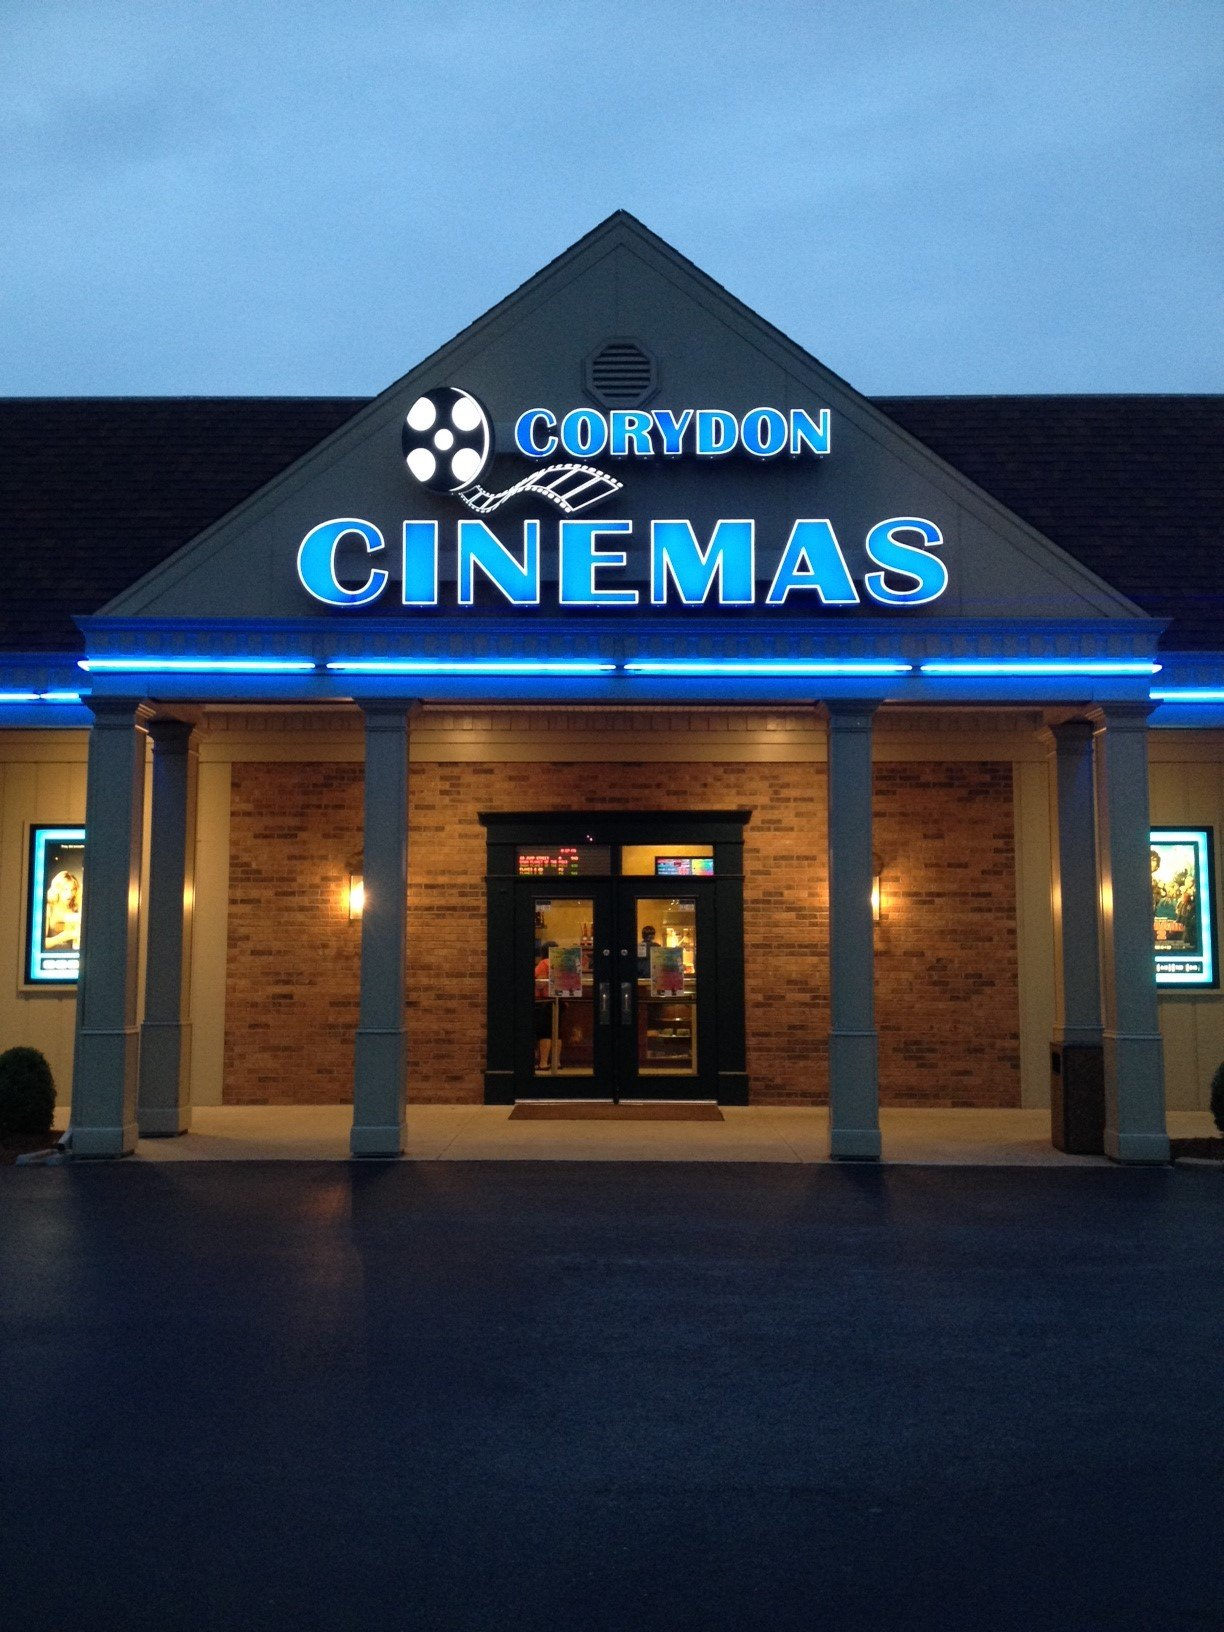 Cinema re-opens with old movies